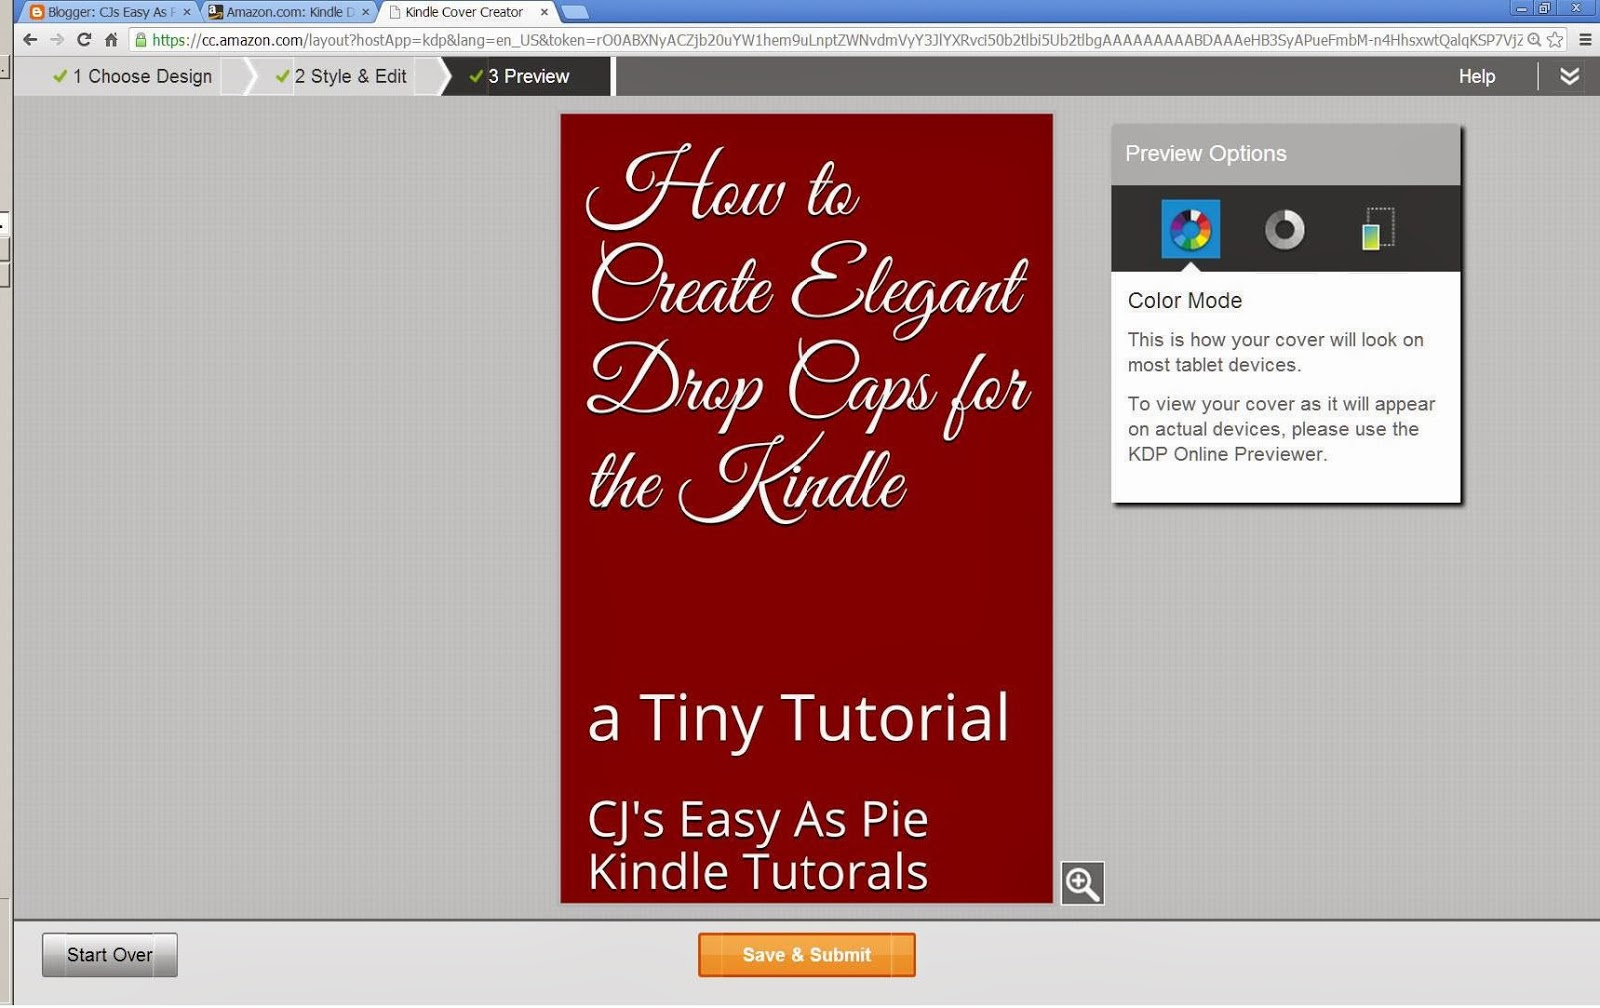 CJs Easy As Pie Kindle Tutorials: Create eBook Cover with